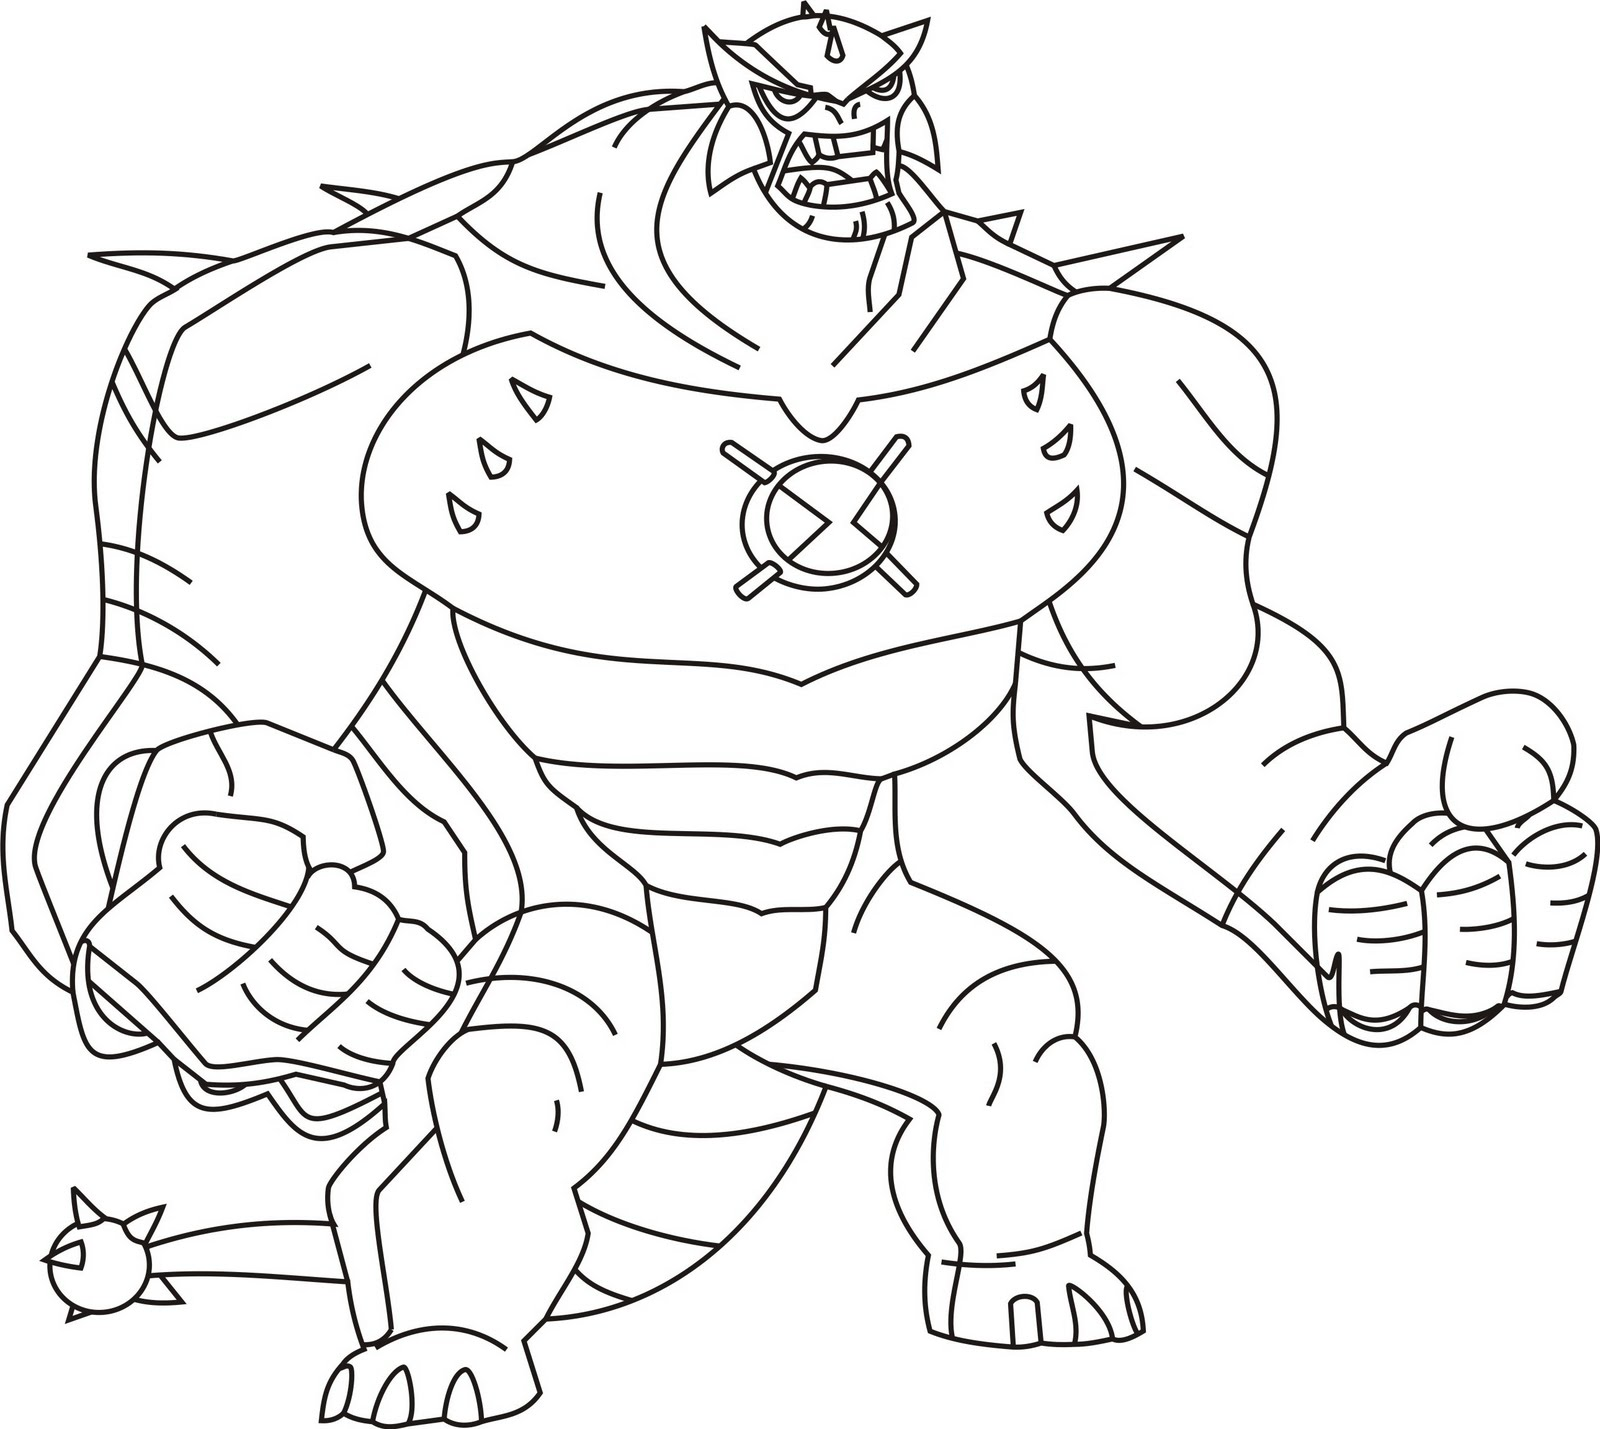 Ben 10 Coloring Pages - Coloring Kids